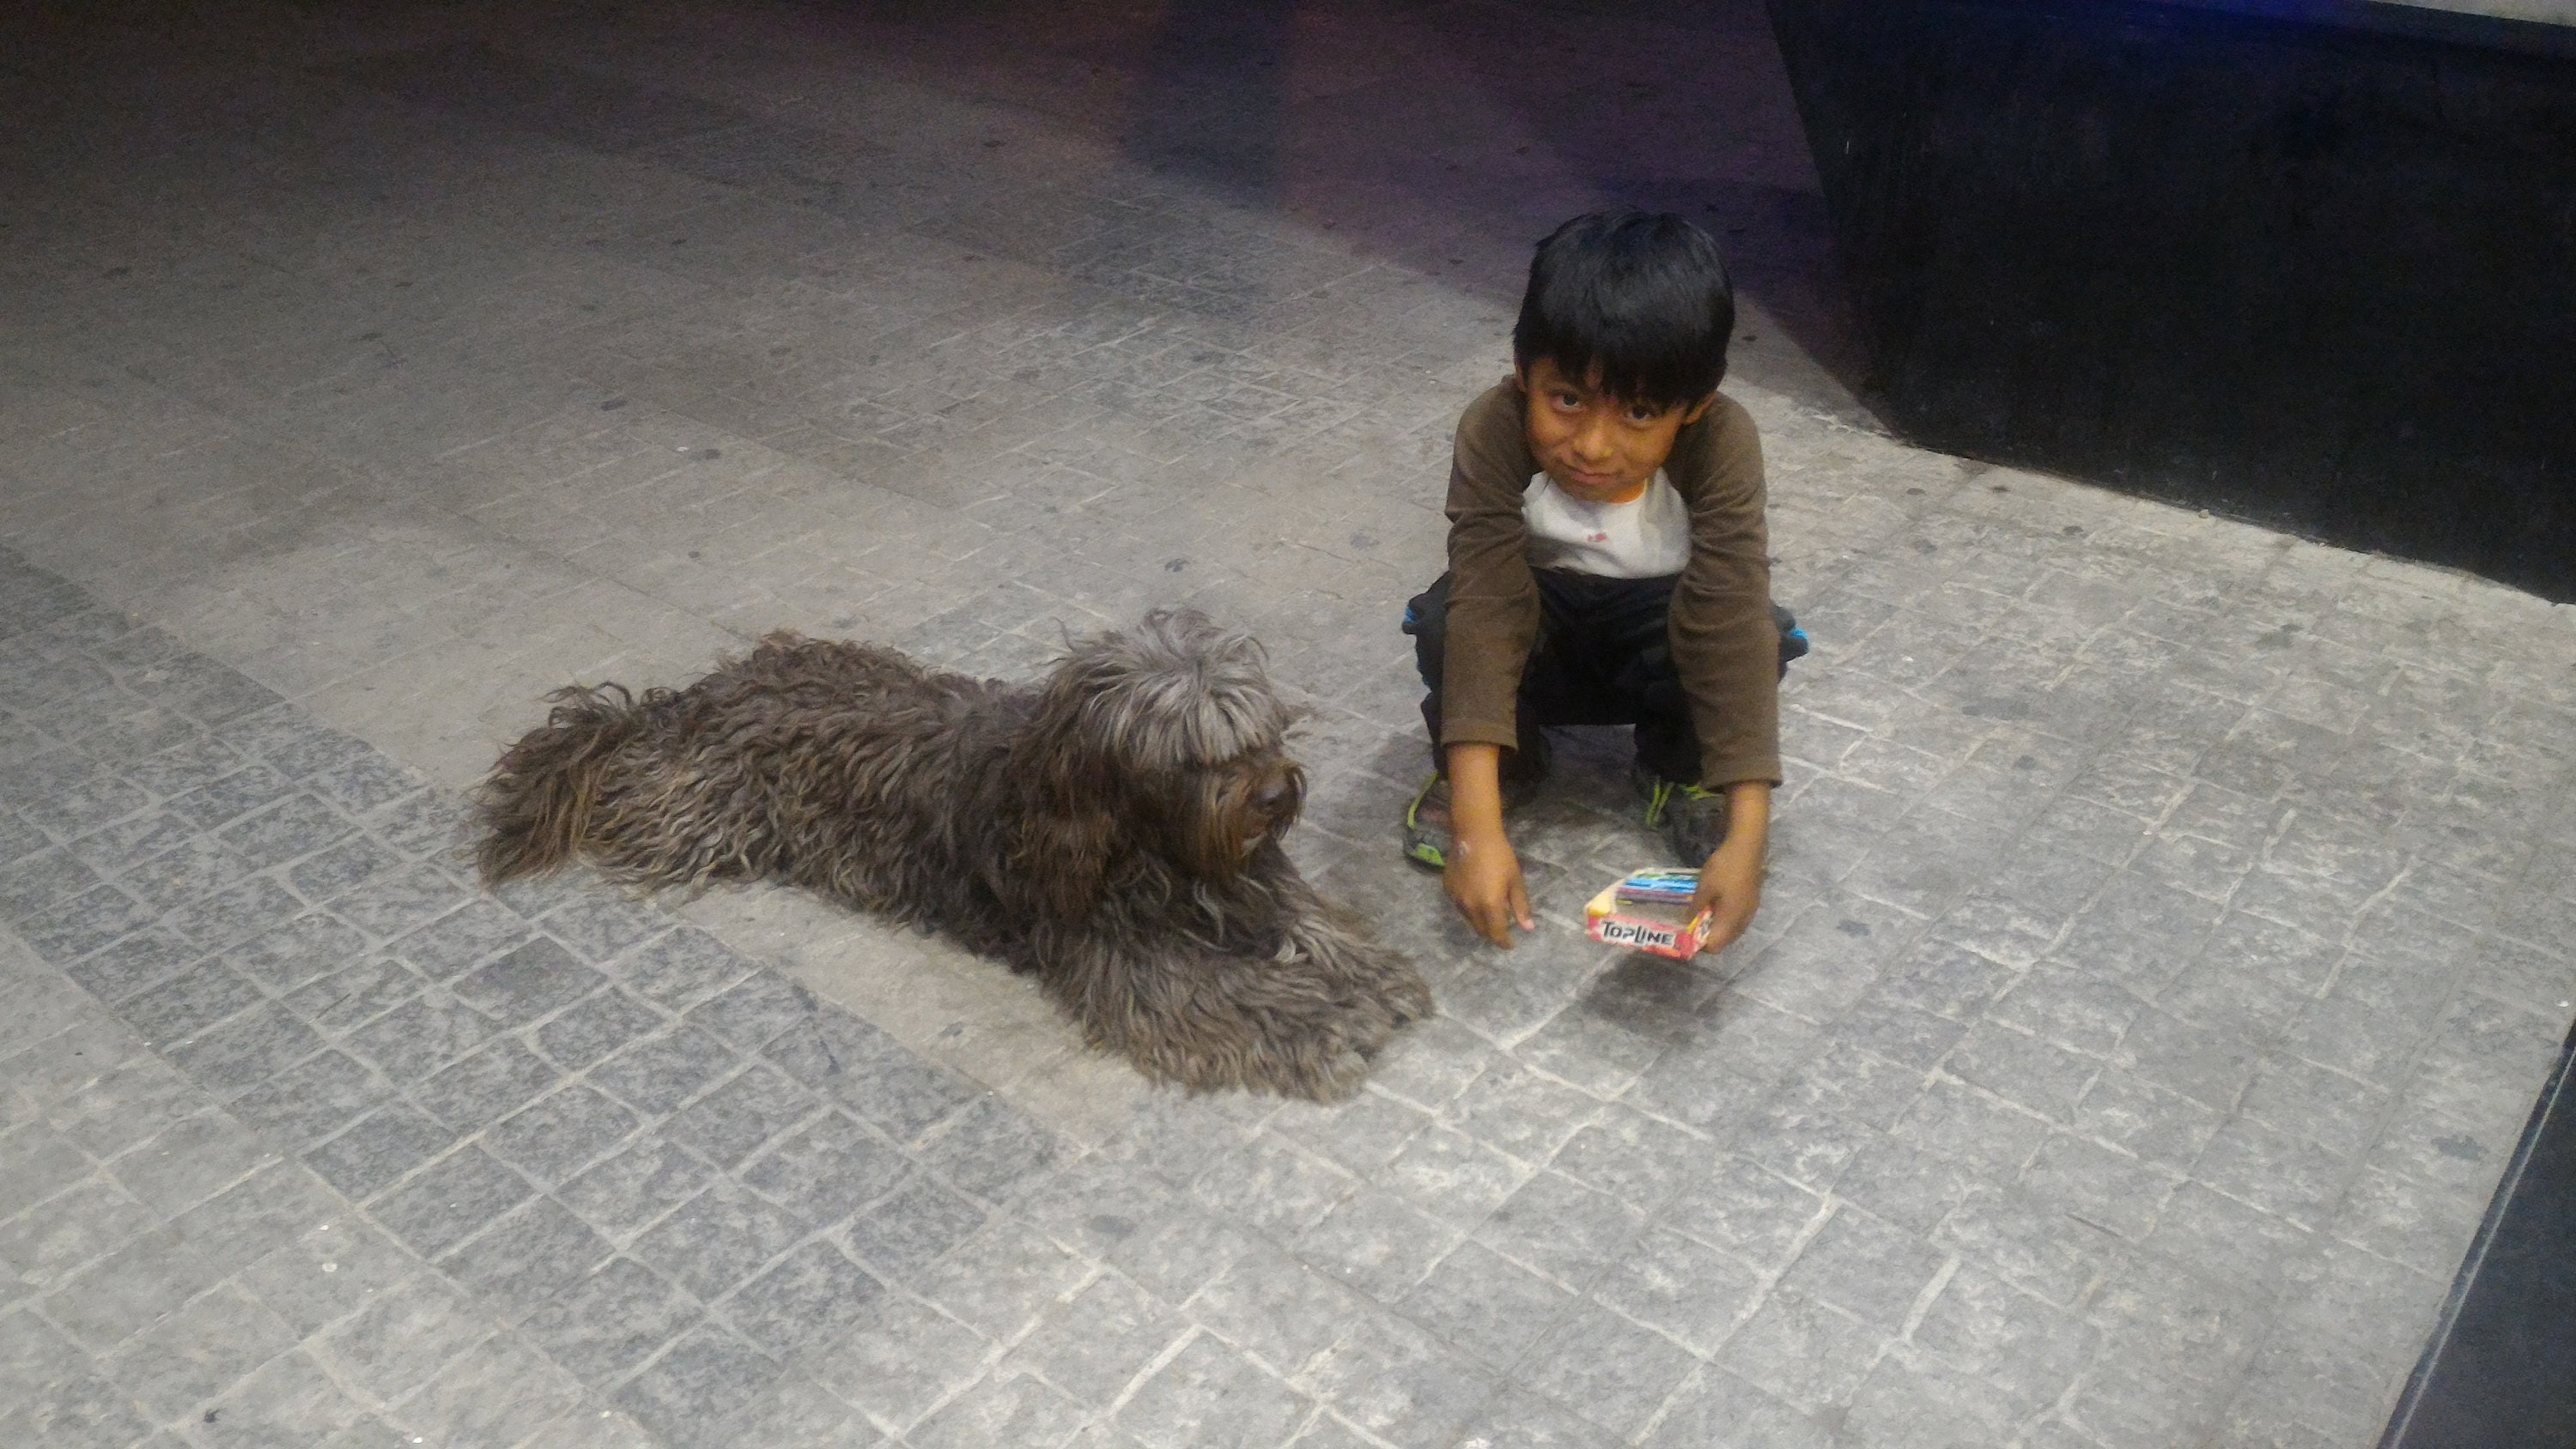 a lesson on gratefulness, taught by a 9 year old boy and his dog